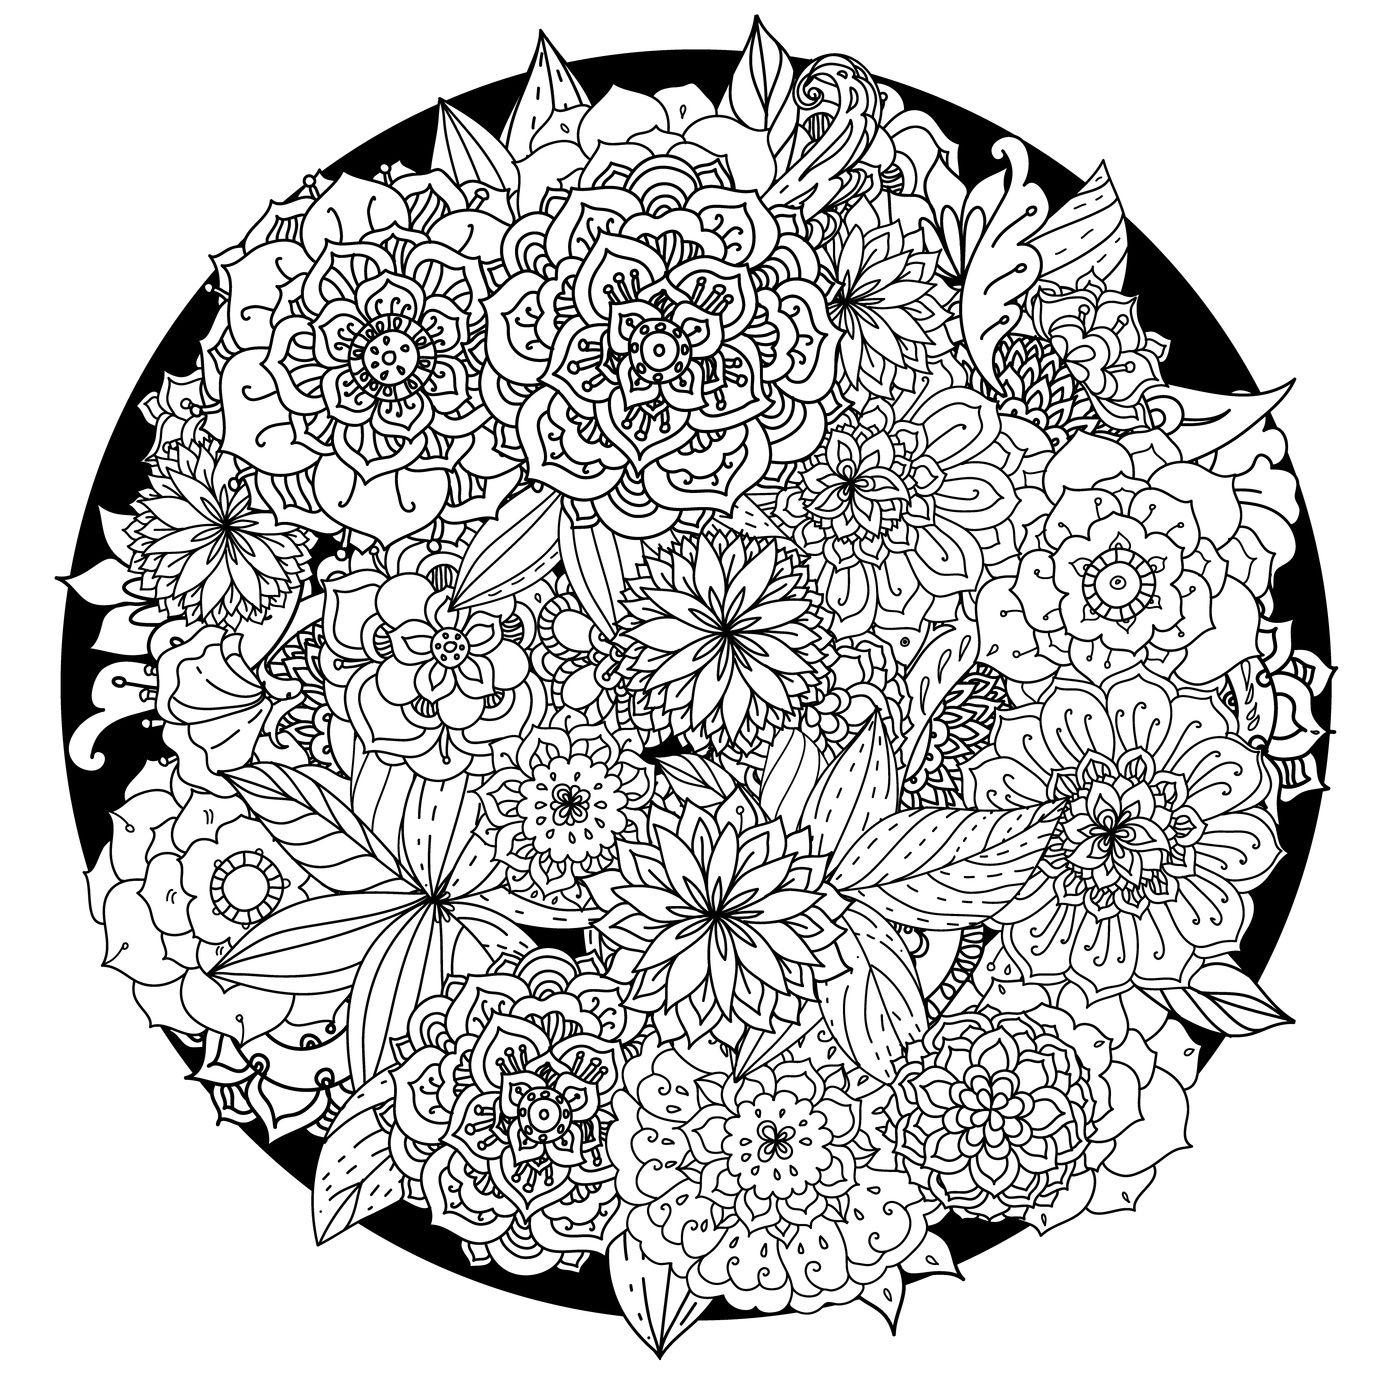 free printable mandalas to color for adults abstract mandala coloring page for adults diy printable to mandalas for adults printable free color